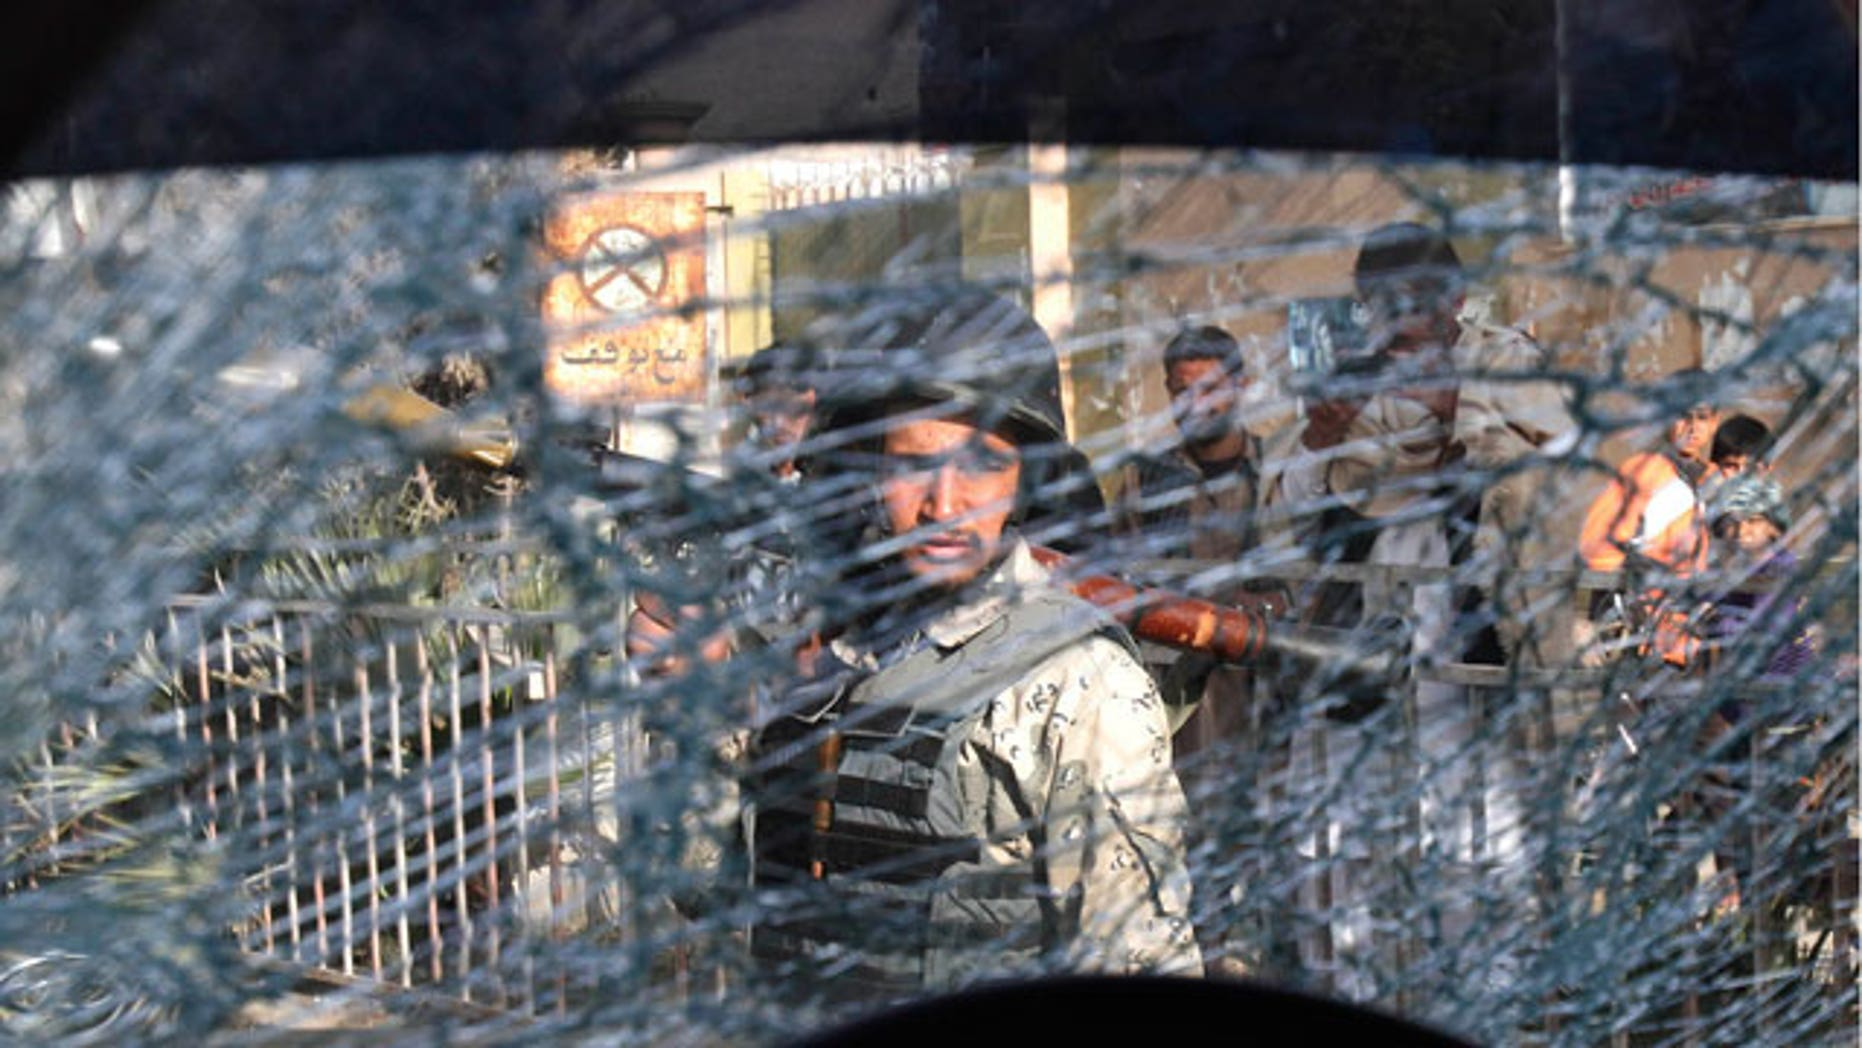 Mar. 6, 2012: An Afghan soldier passes by a chattered window of a destroyed police car after an explosive device went off in the center of Jalalabad, east of Kabul, Afghanistan.